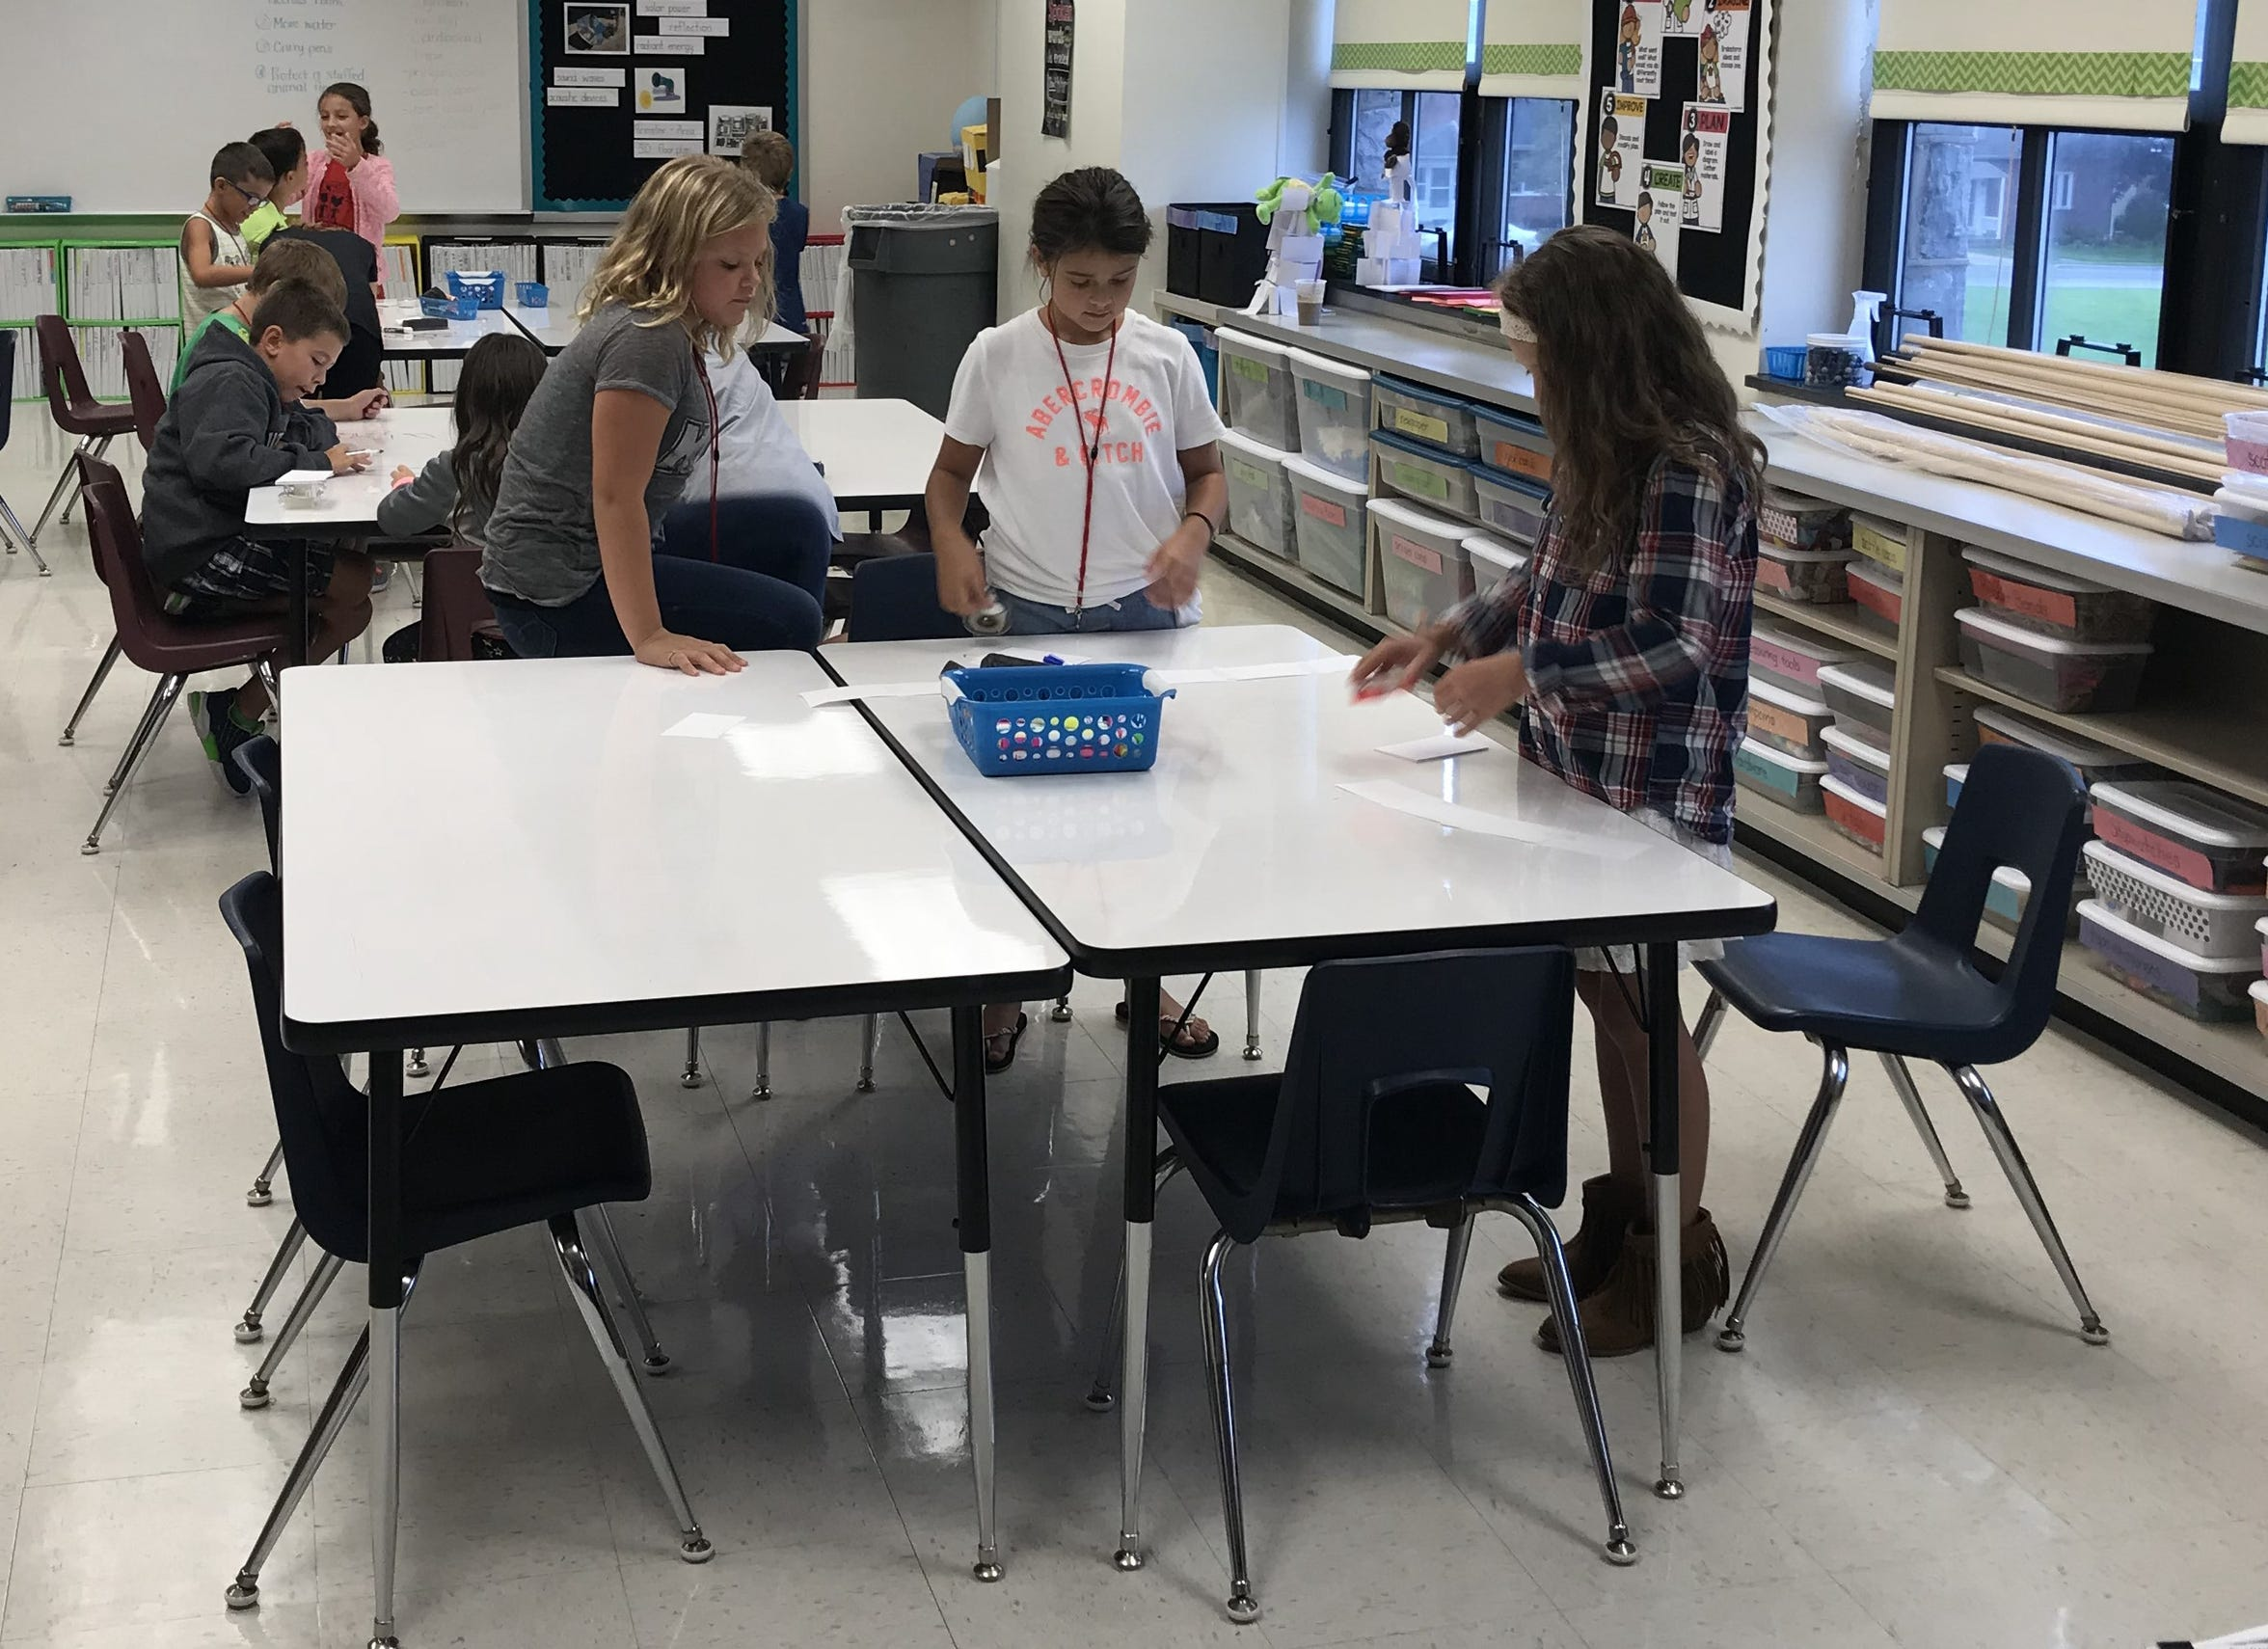 Third grade students at Annville Elementary School build a container to keep a stuffed giraffe dry in the rain during a STEAM special on Monday, Sept. 17.